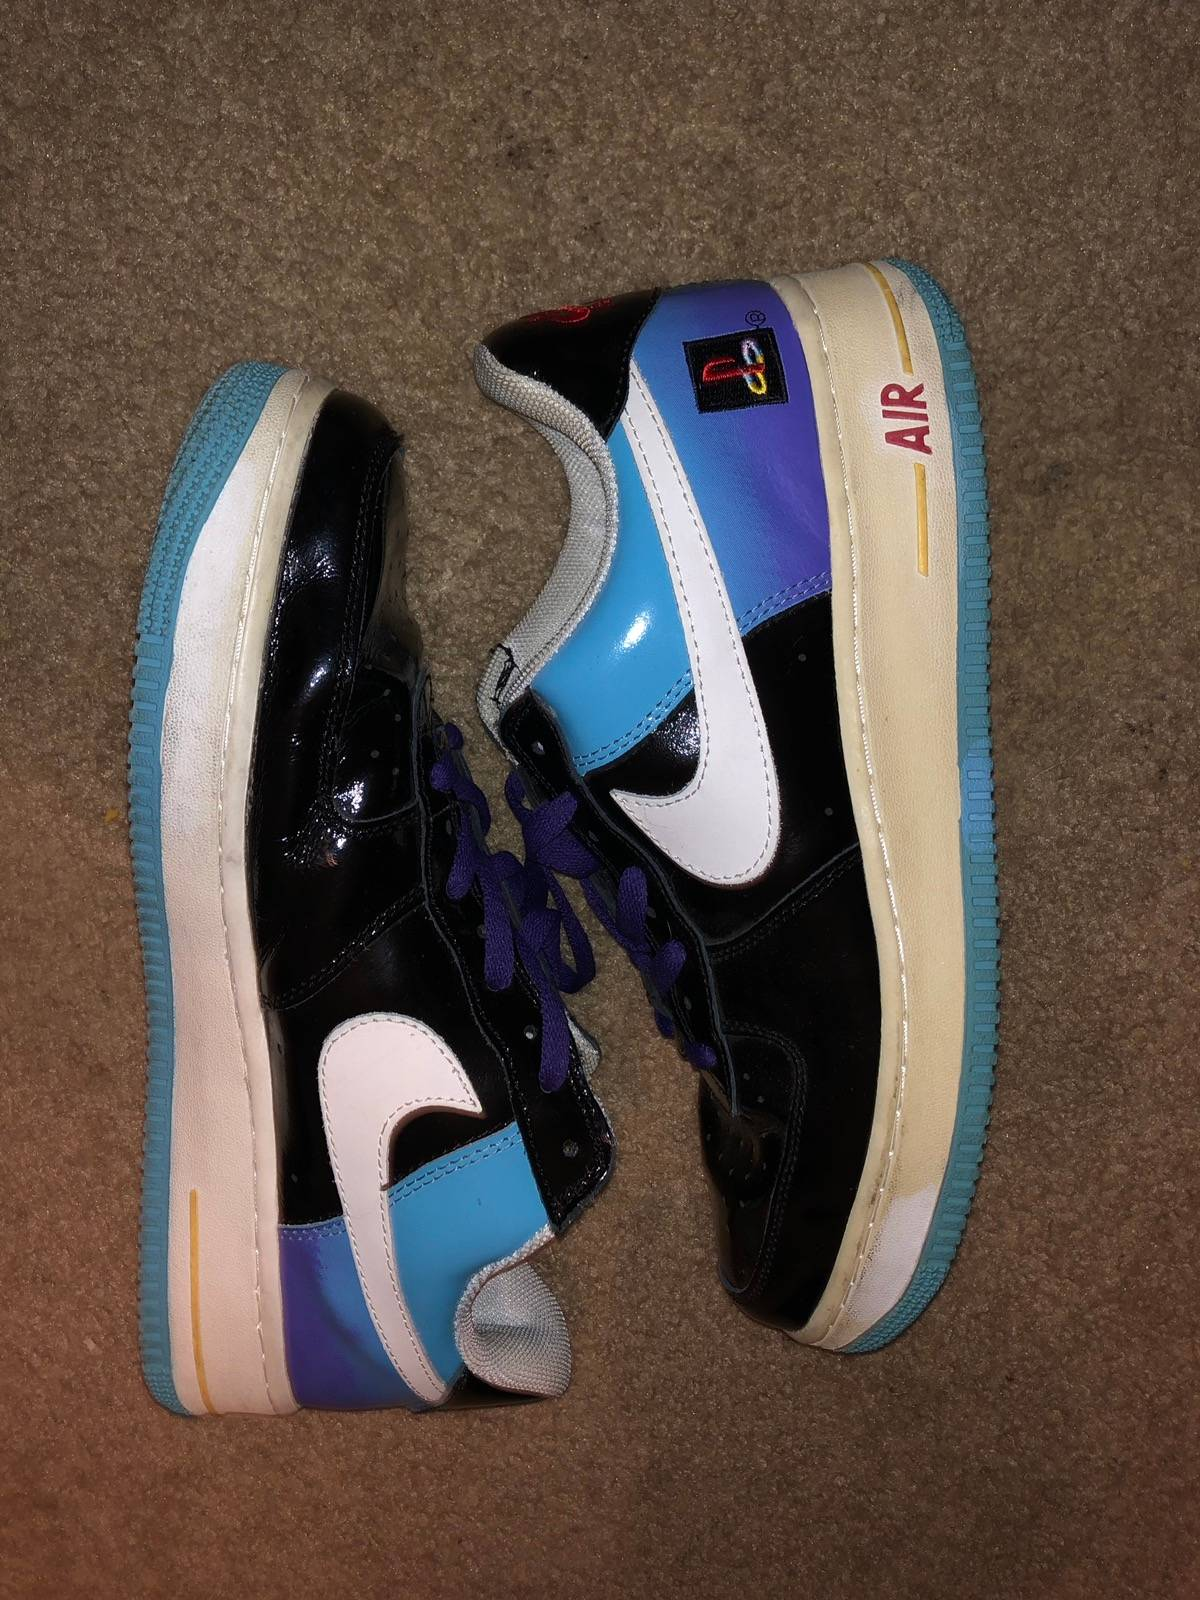 efa698d7045 Unbranded Nike Air Force 1 Playstation (Fake) Size 12 $40